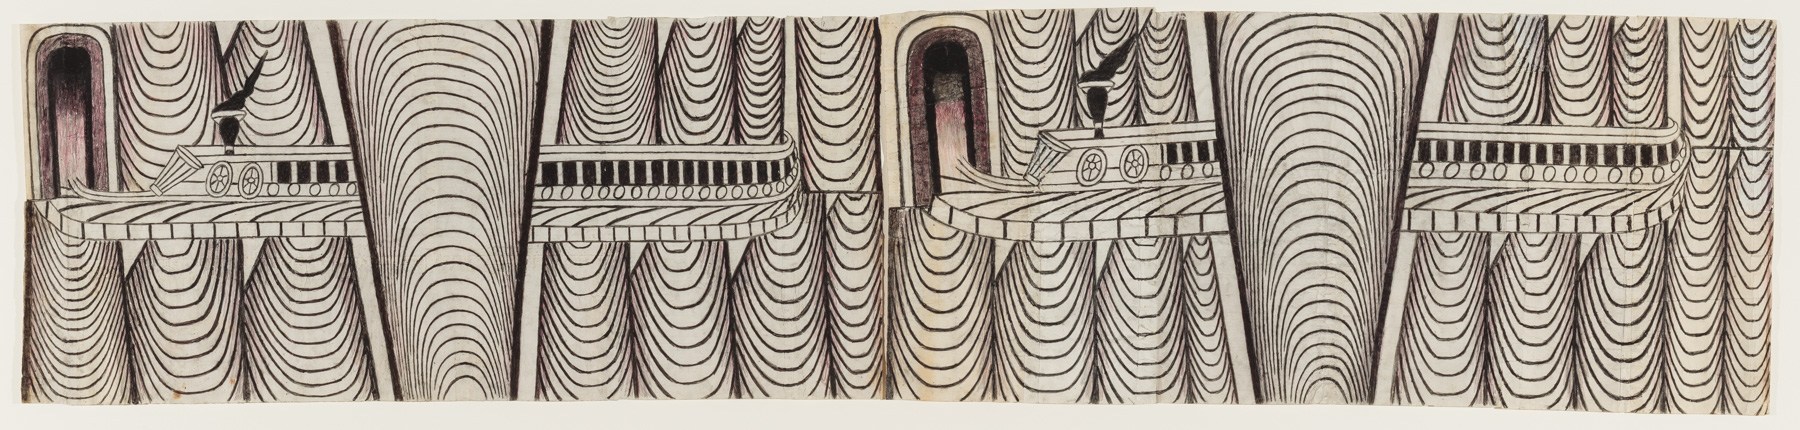 Drawing of two trains moving left through a spiraling landscape